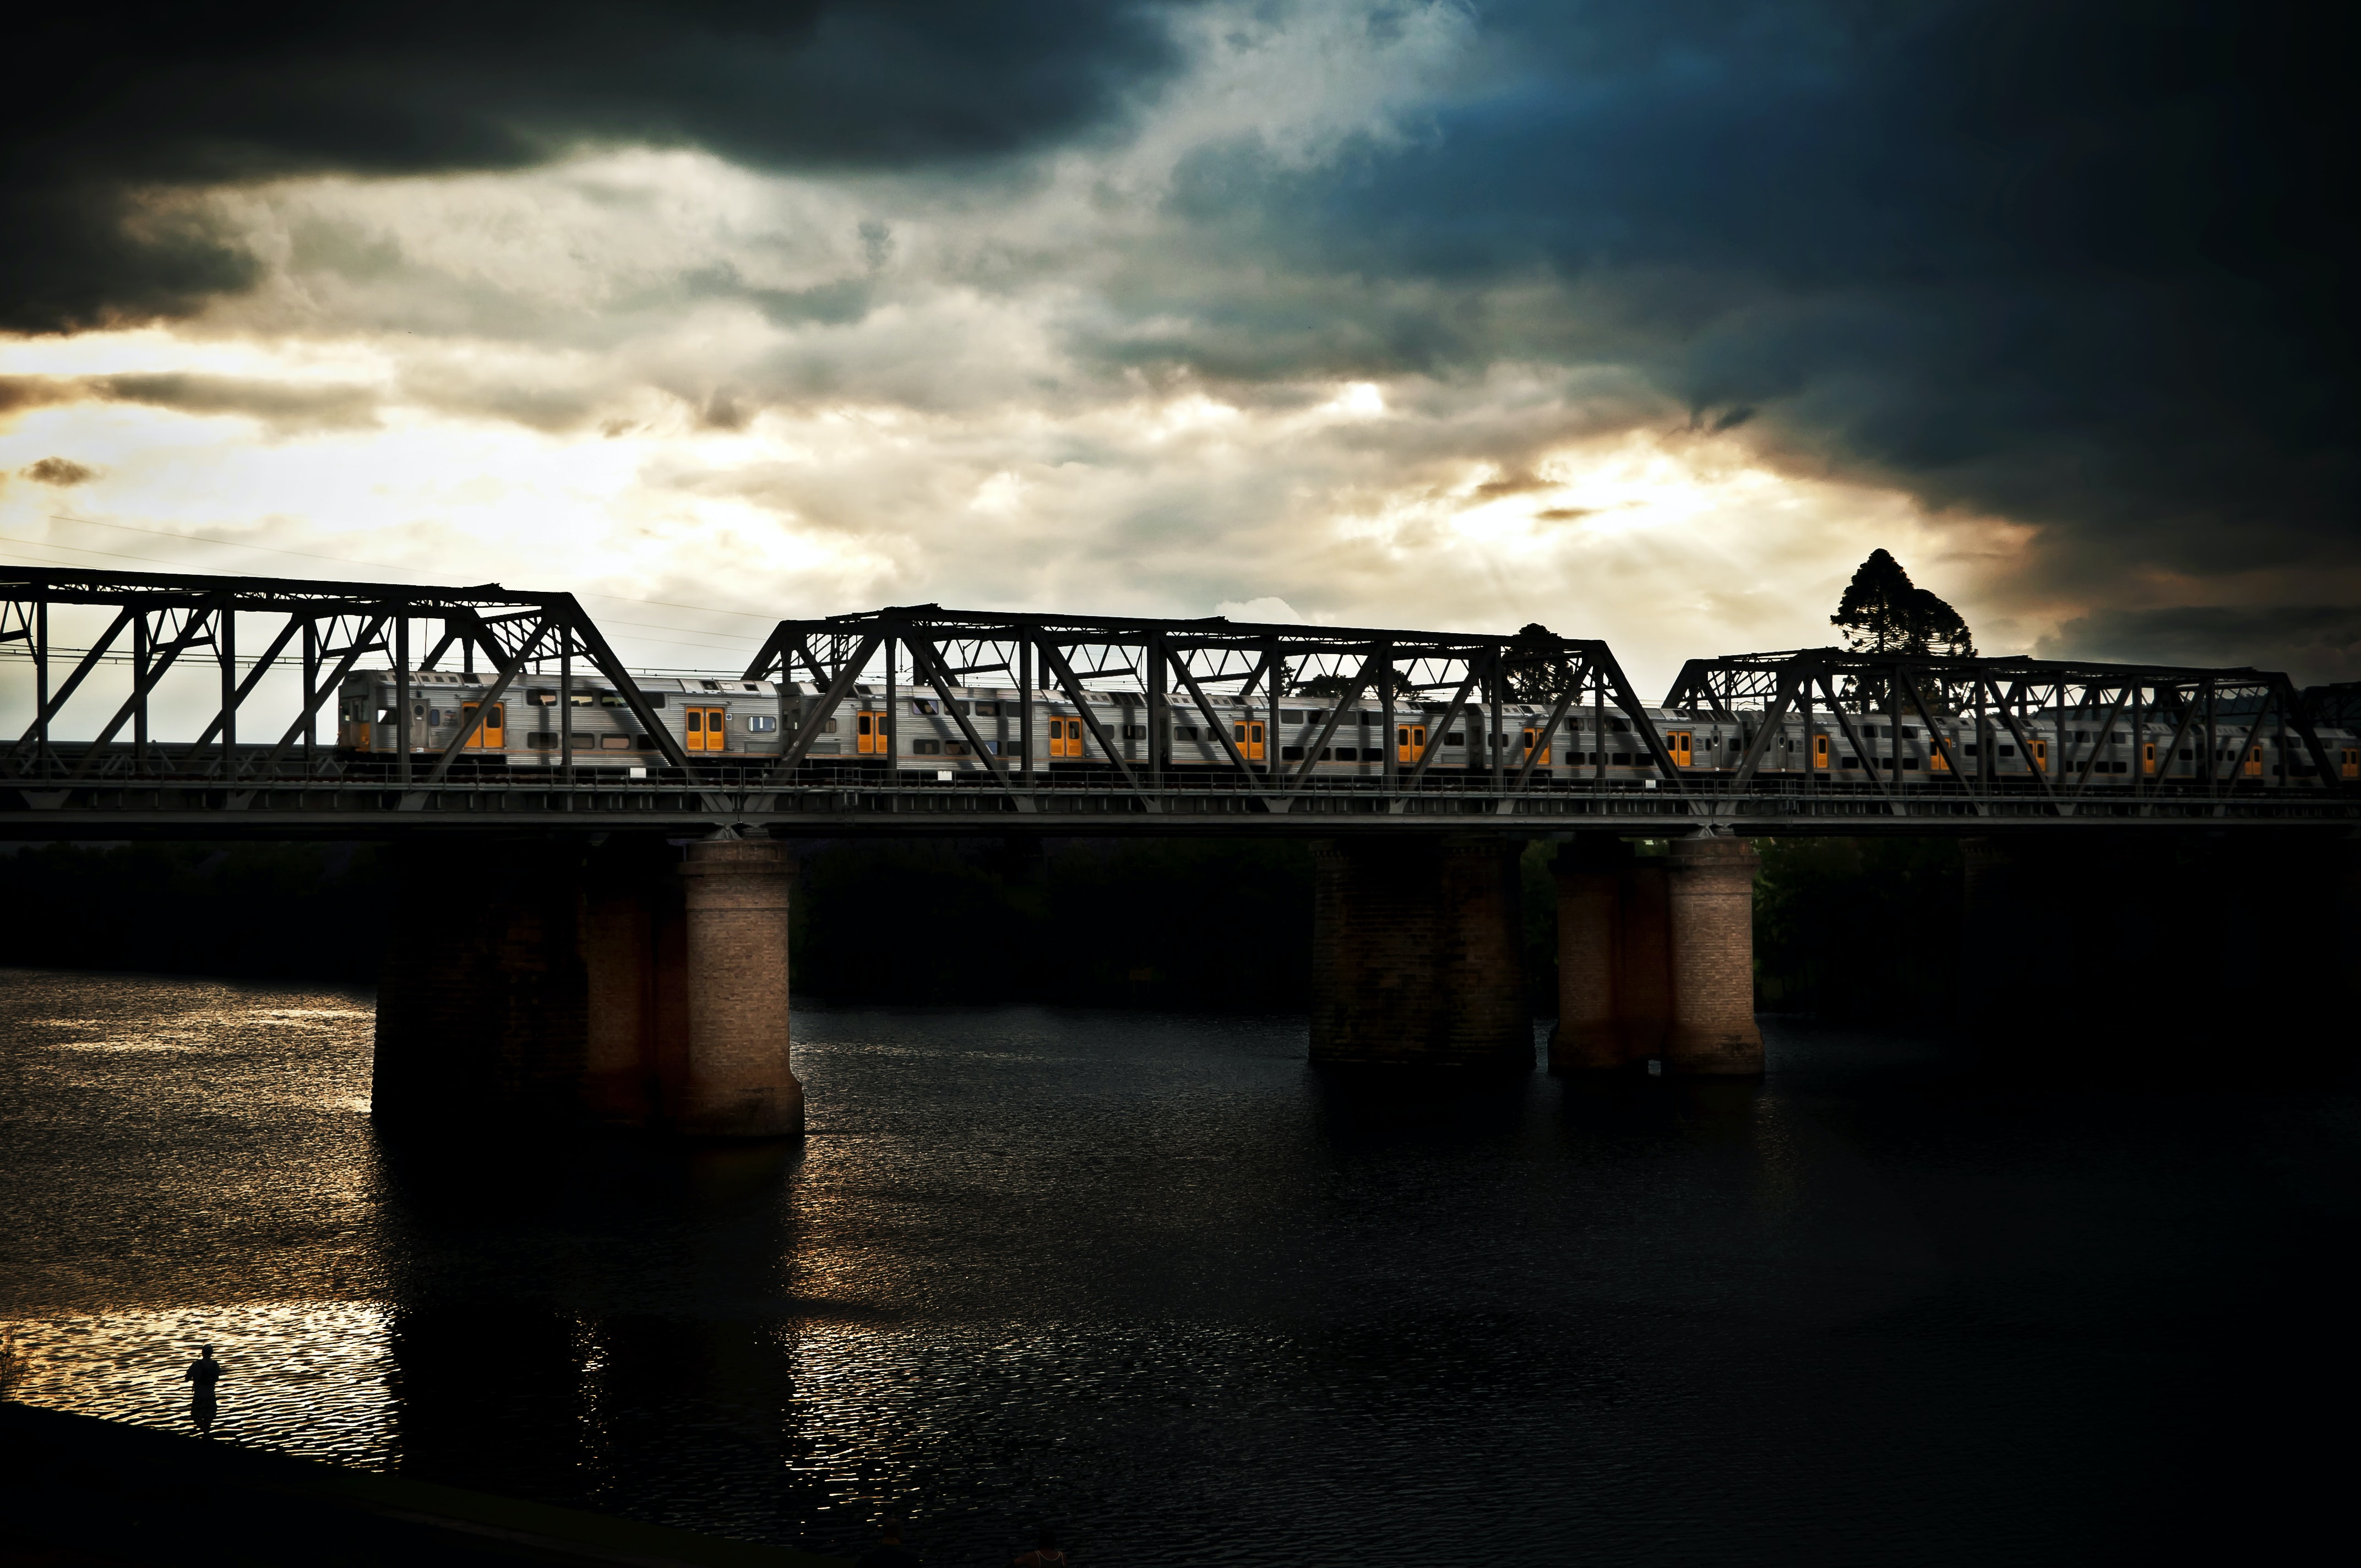 silhouette photography of bridge under nimbus clouds